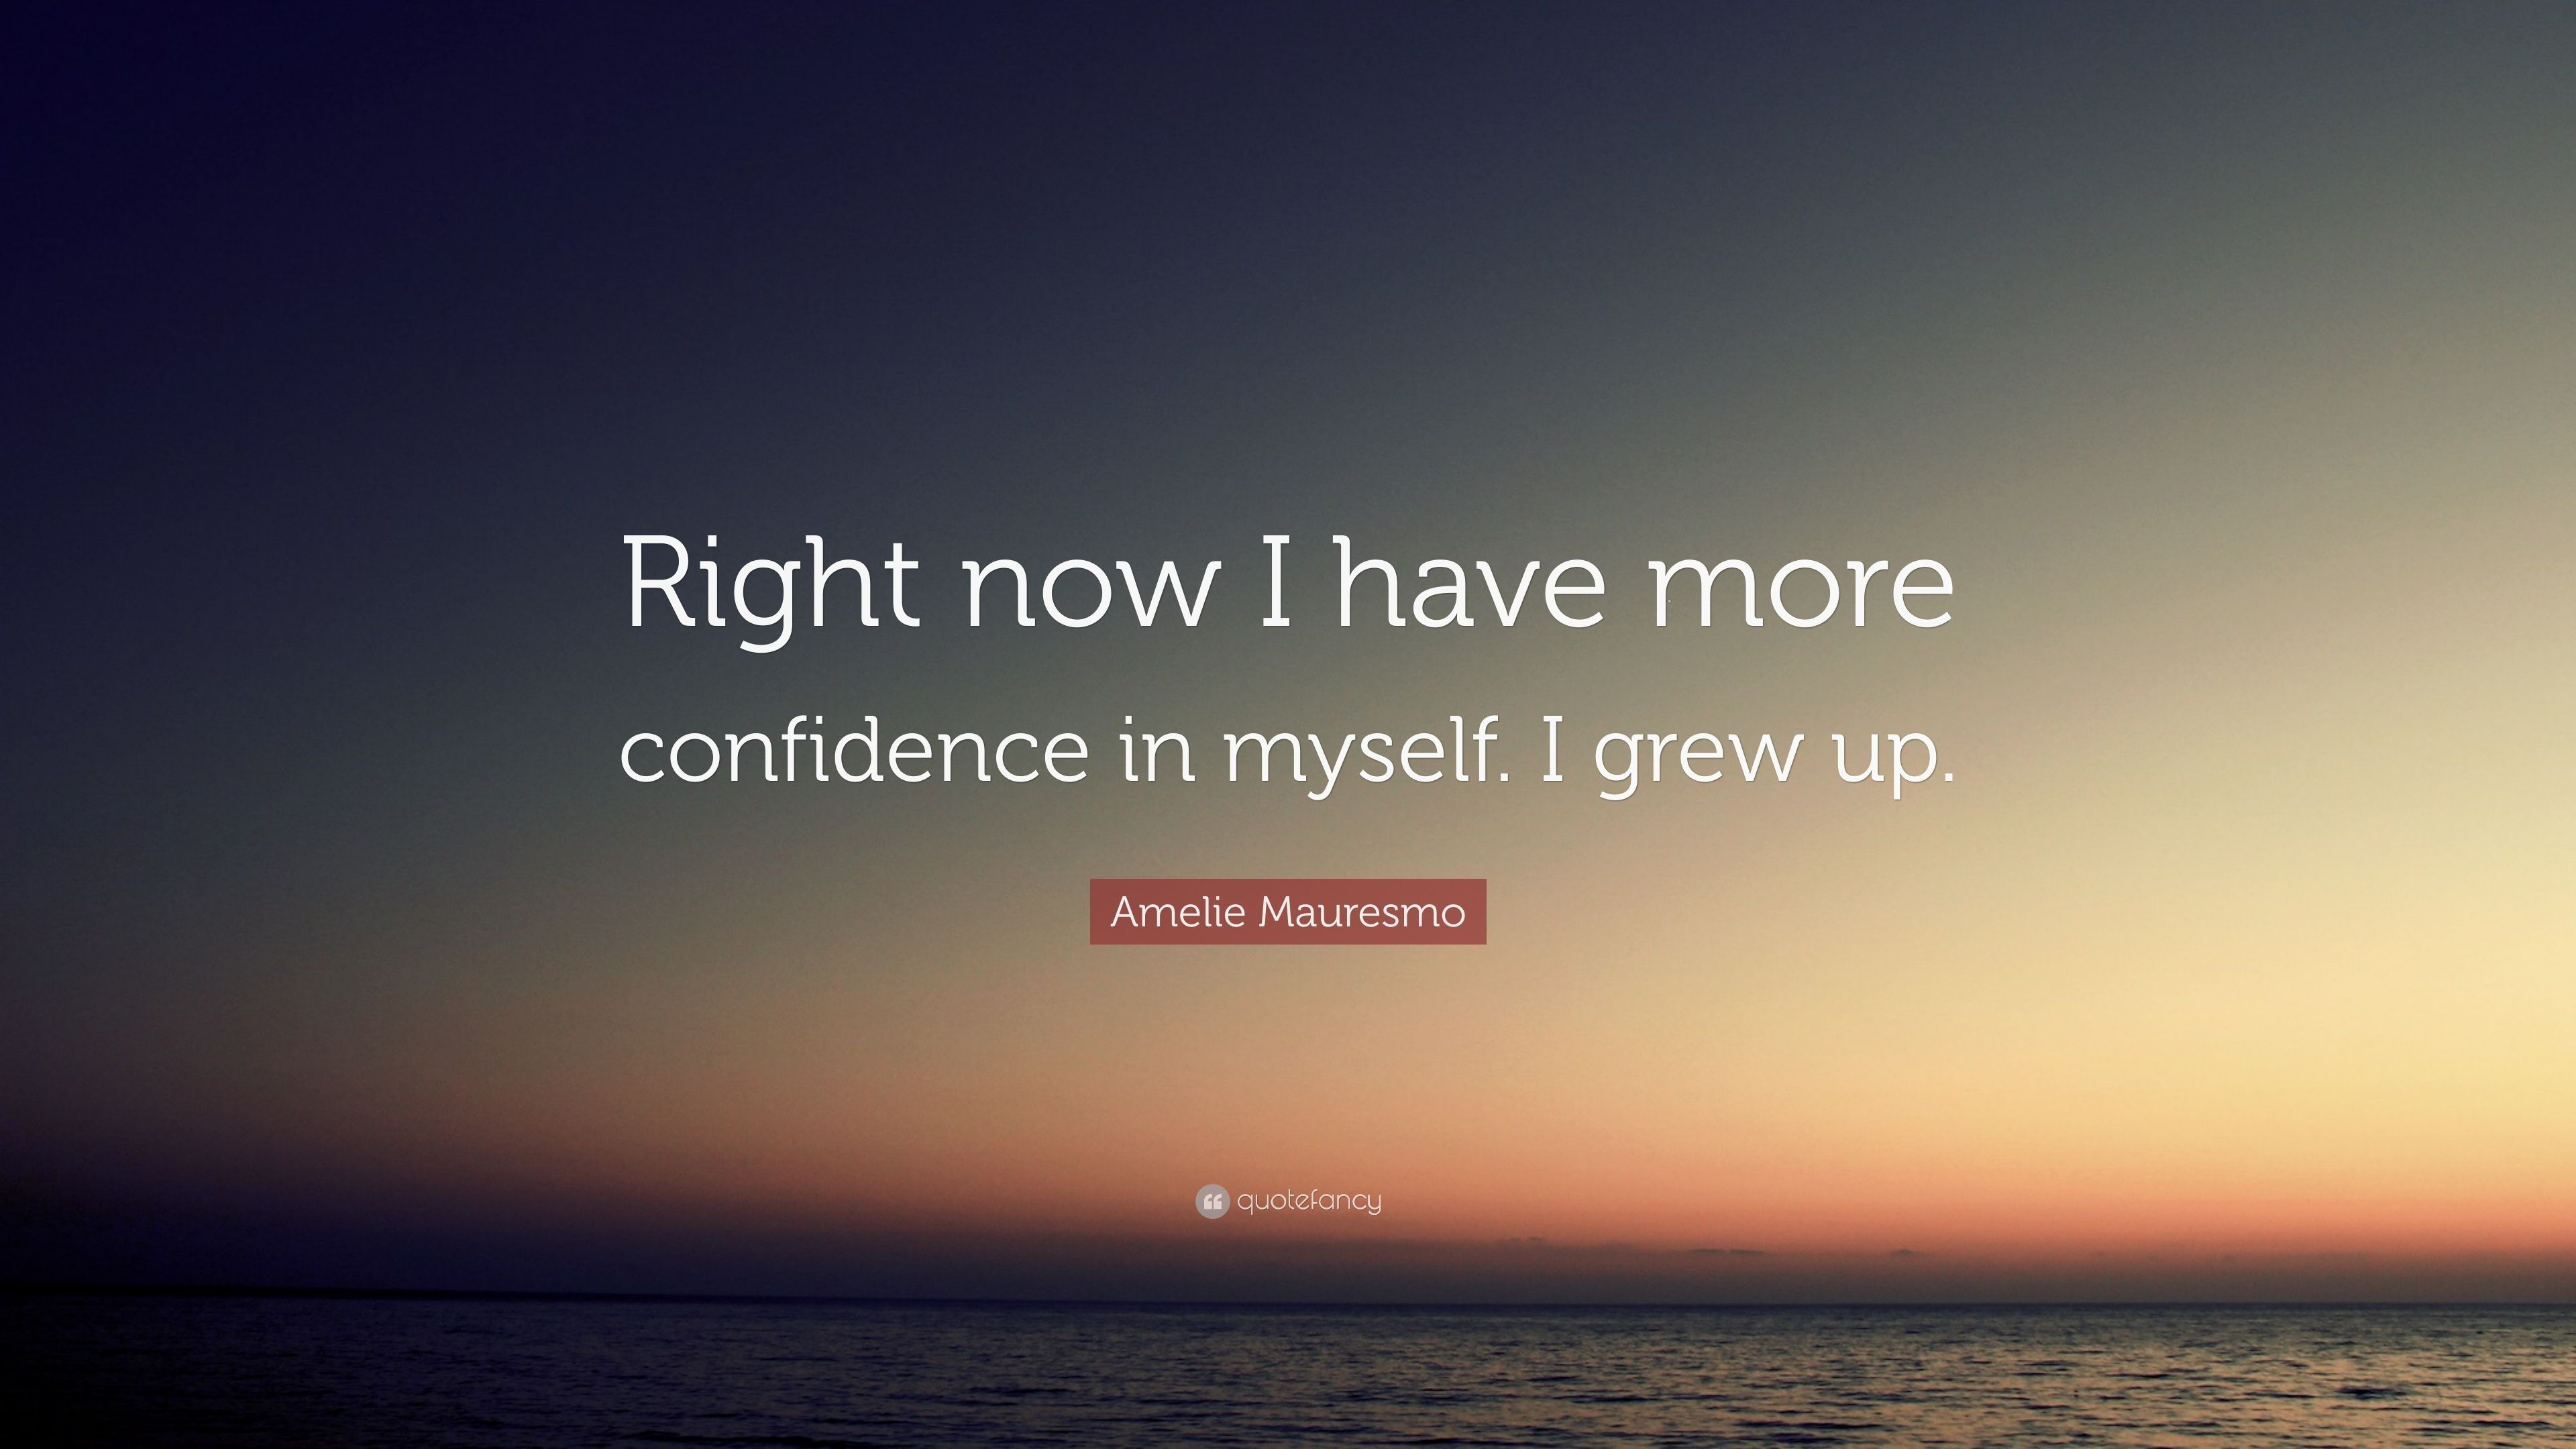 how to have more confidence in myself